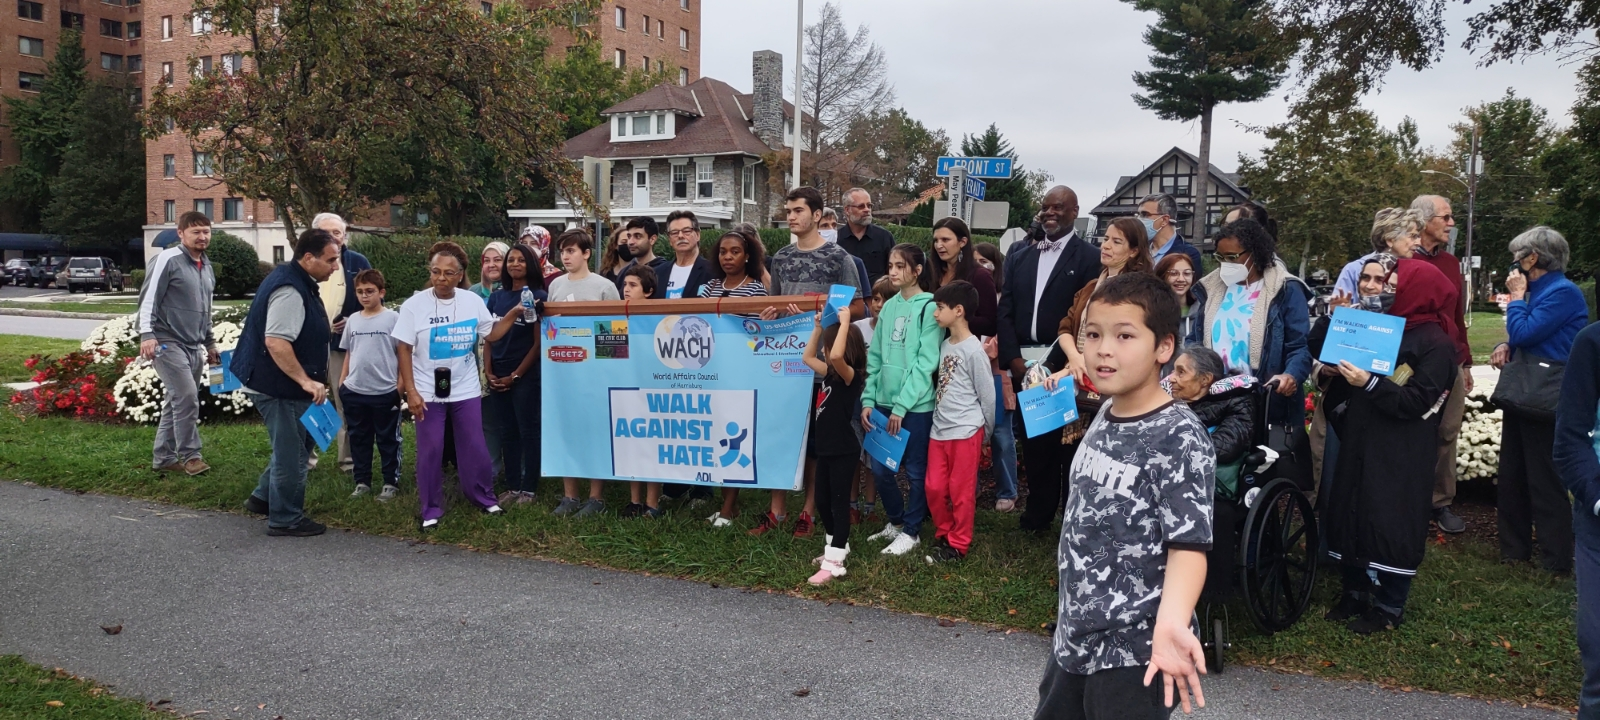 Thanks to all who joined us for the Walk Against Hate